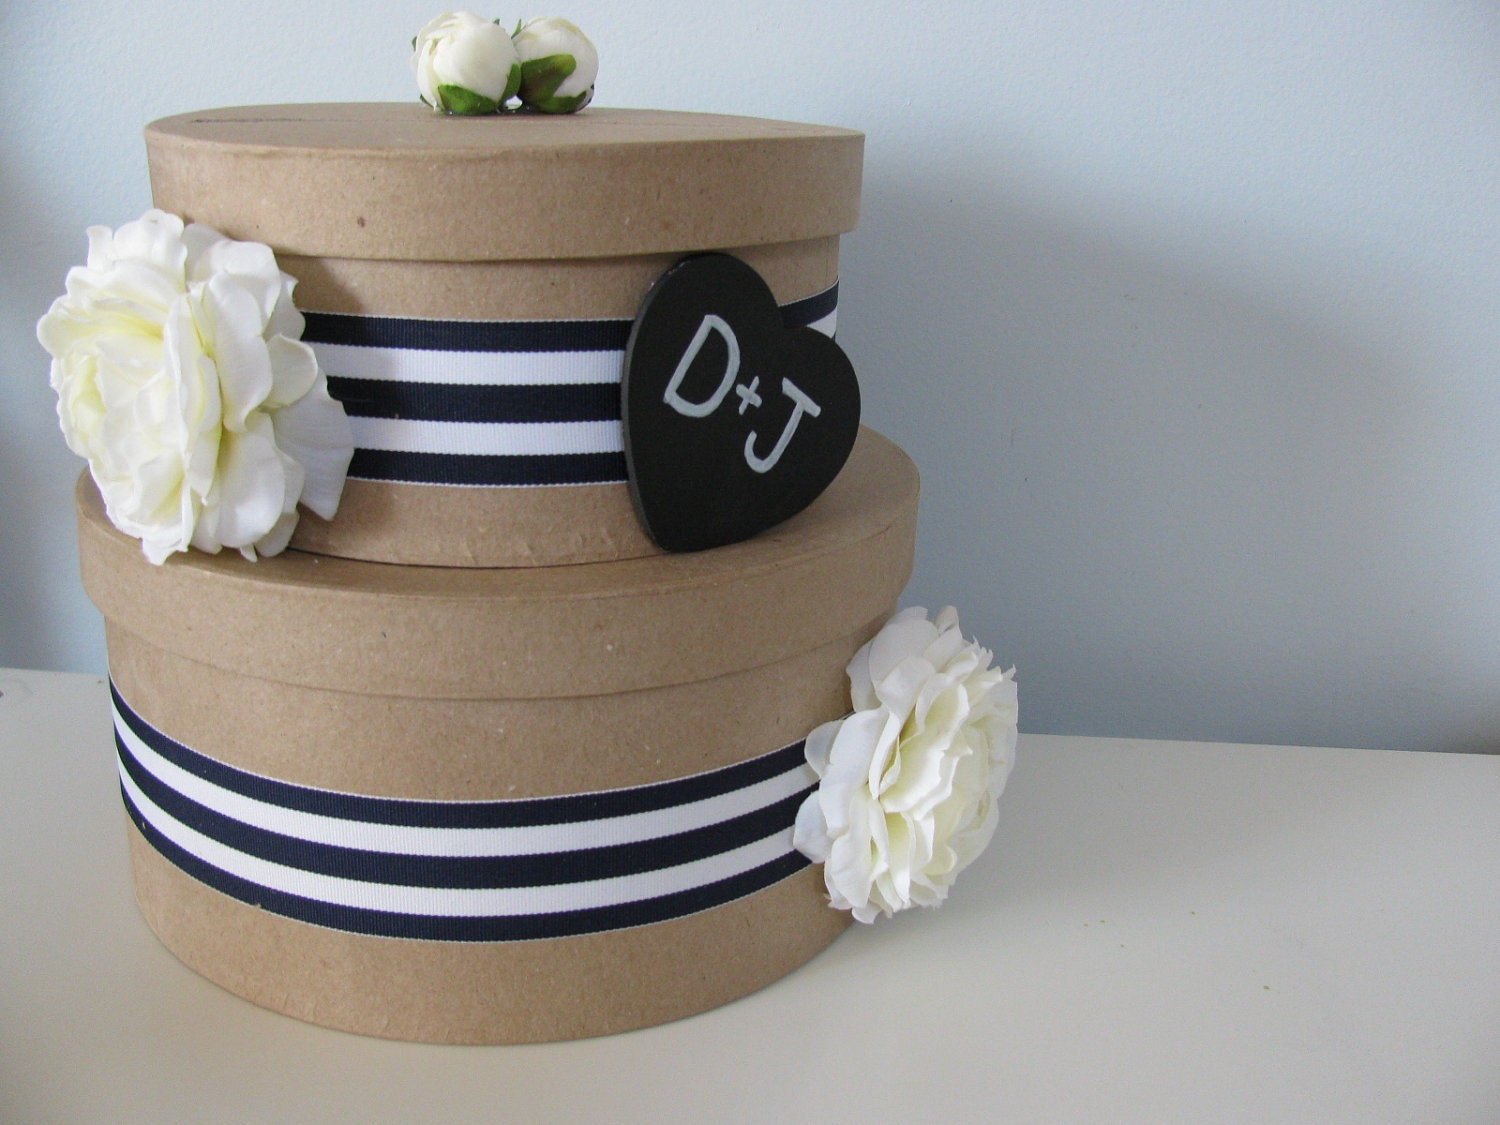 Nautical Rustic Wedding Card Box 2 tiered with Chalkboard or Wood Personalized Tag Navy & White Stripe Ribbon with White Roses